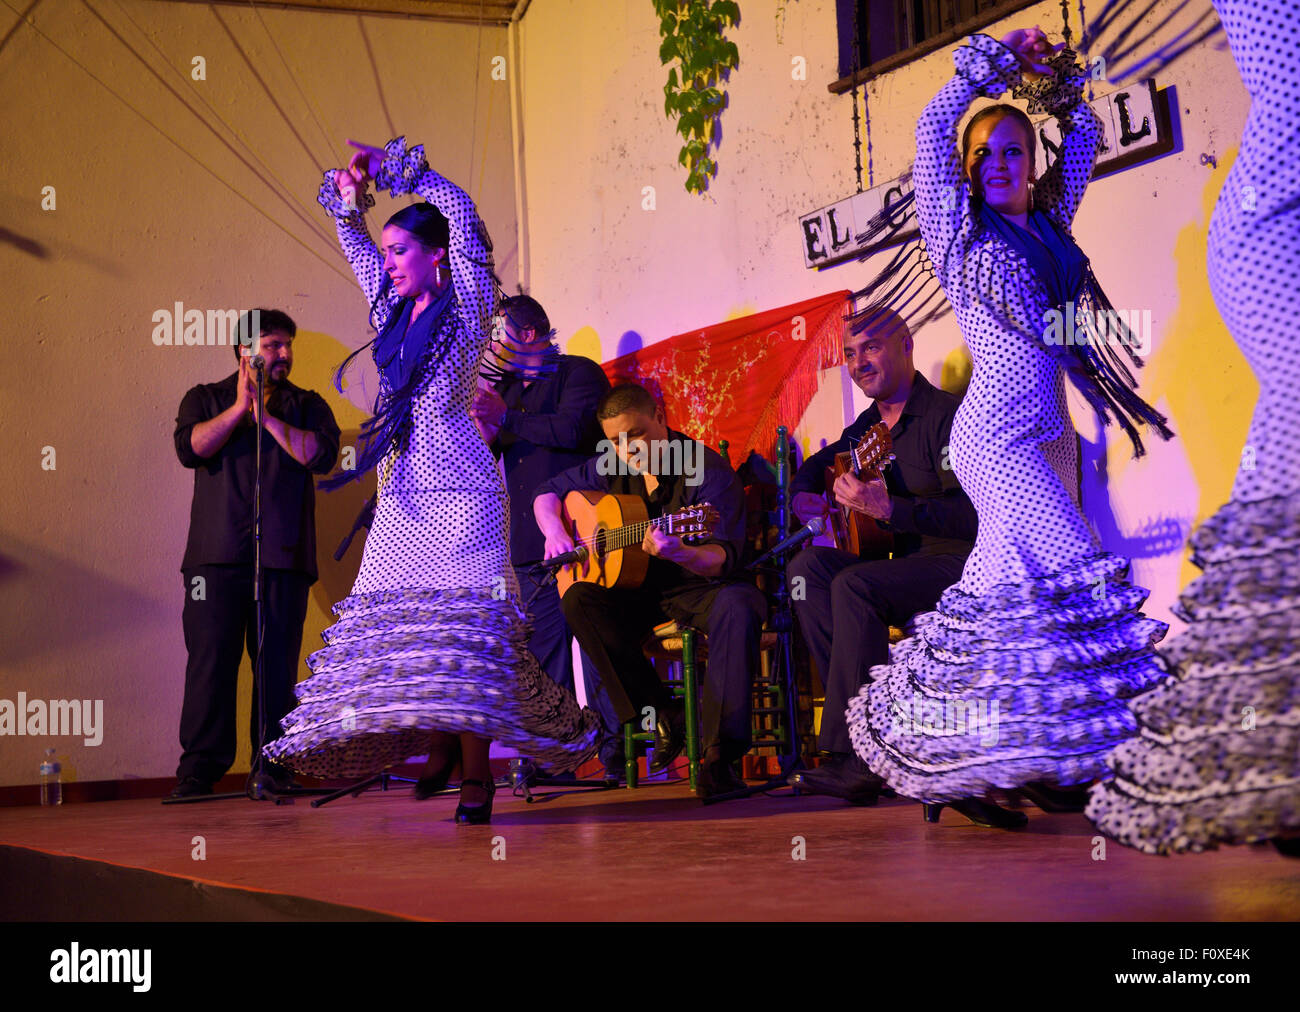 Spinning female Flamenco dancers on stage at night in an outdoor courtyard in Cordoba Spain - Stock Image